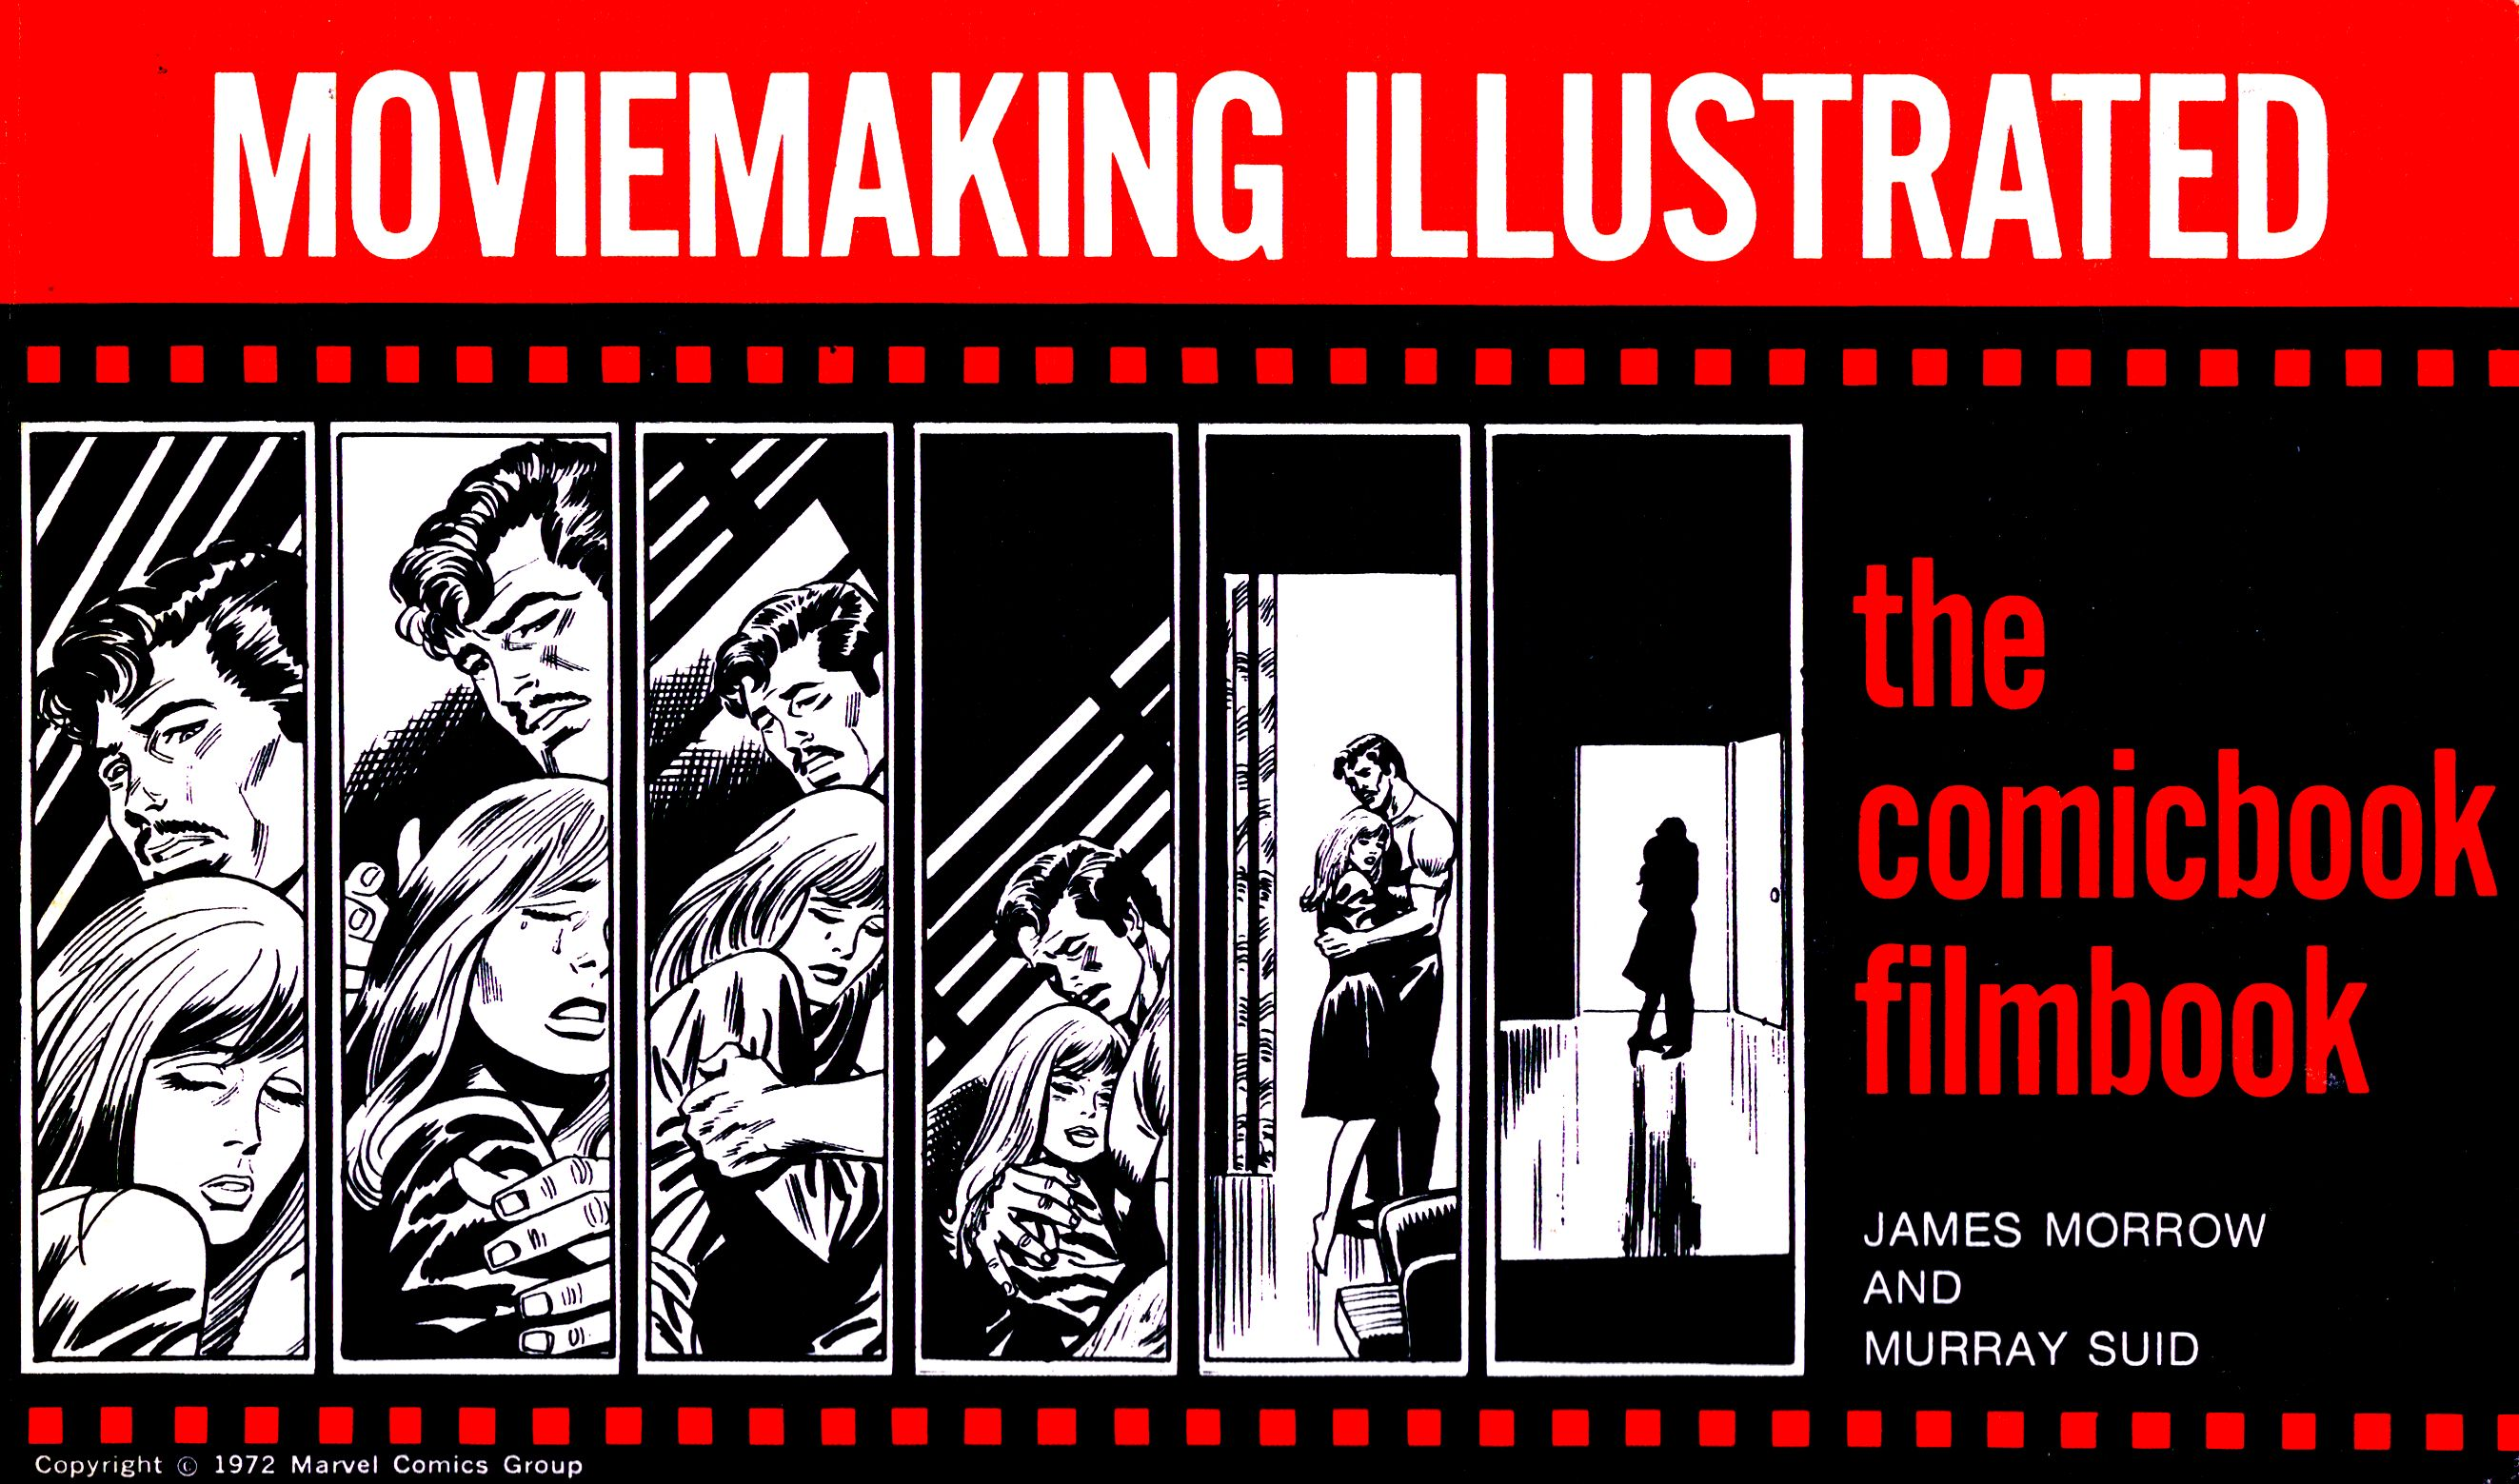 Moviemaking Illustrated